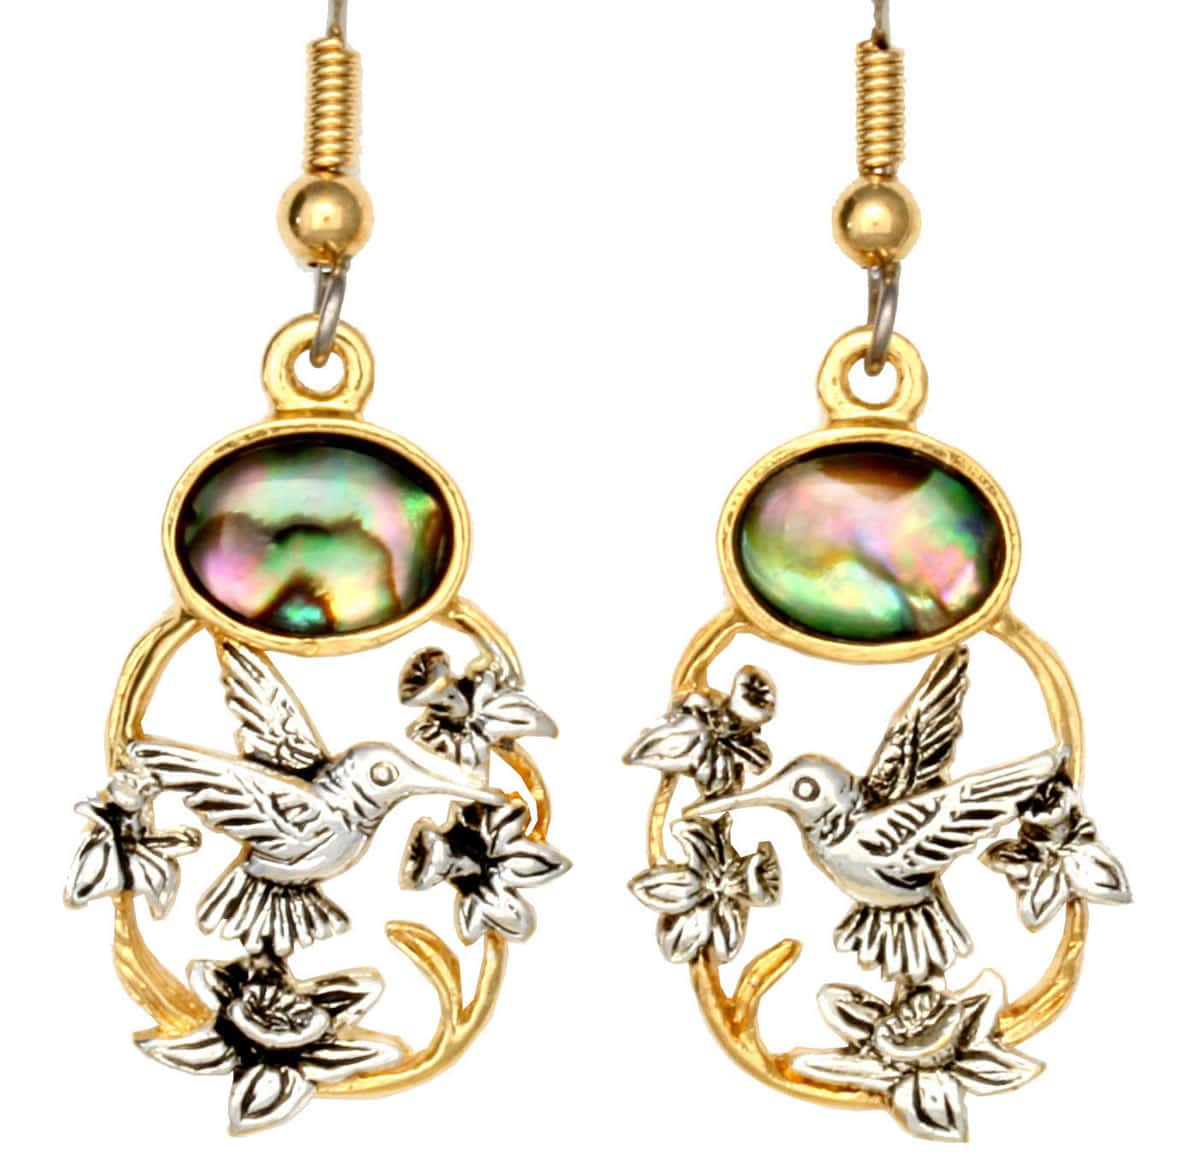 Fashion Wholesale Hummingbird Earrings with Abalone Shell Inlay